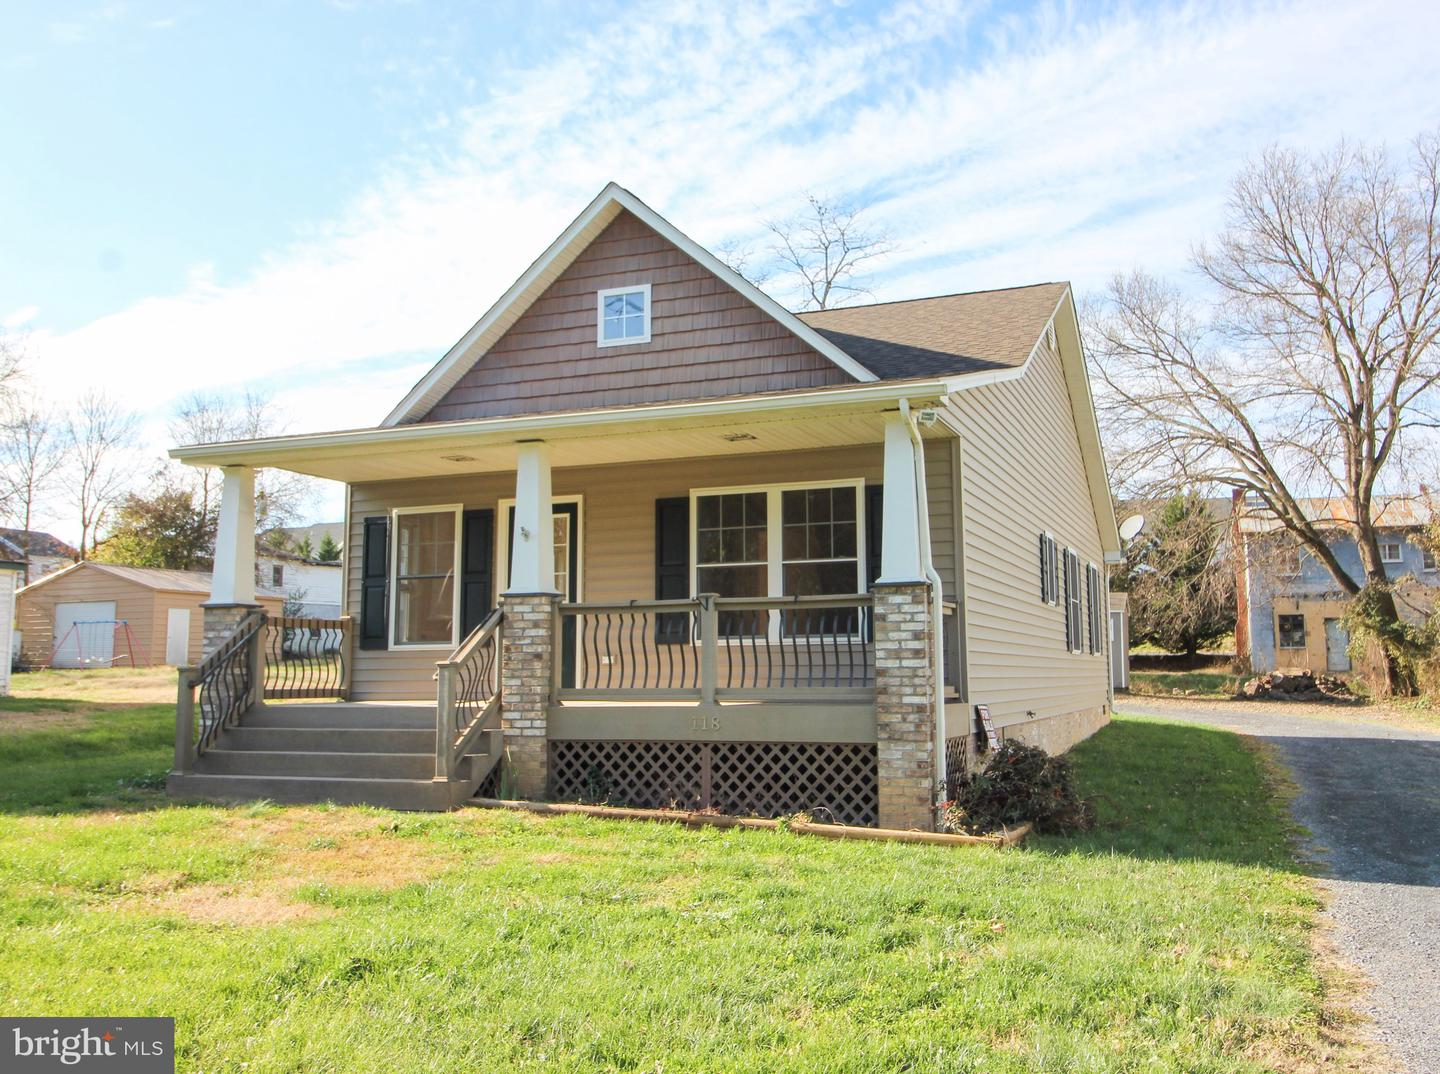 Photo of 118 S WATER ST, WOODSTOCK, VA 22664